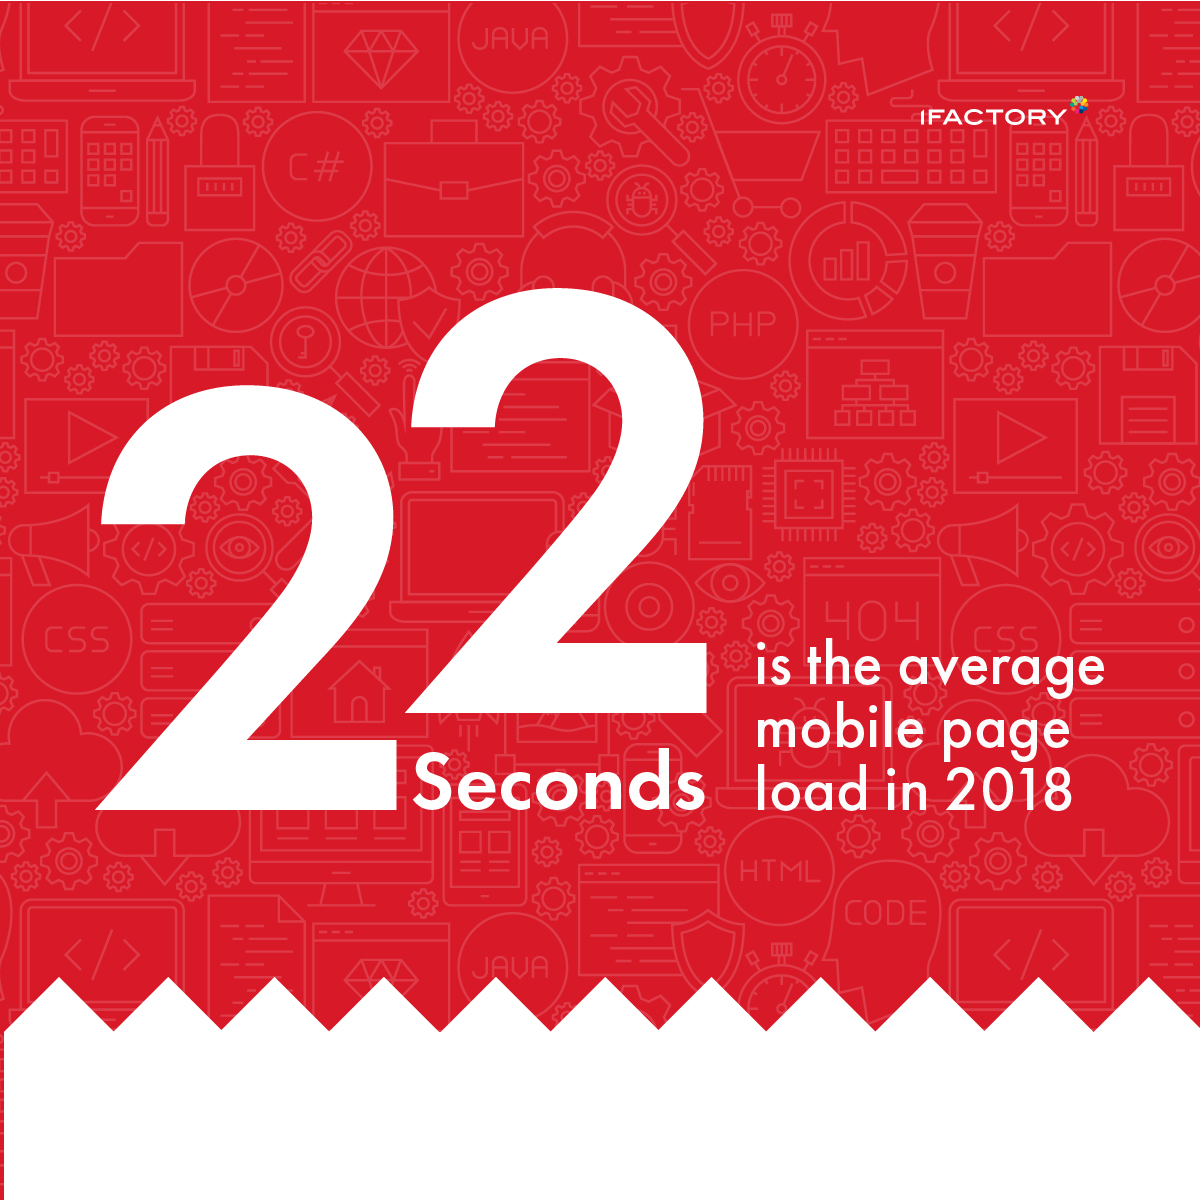 22 seconds is the average mobile page load in 2018